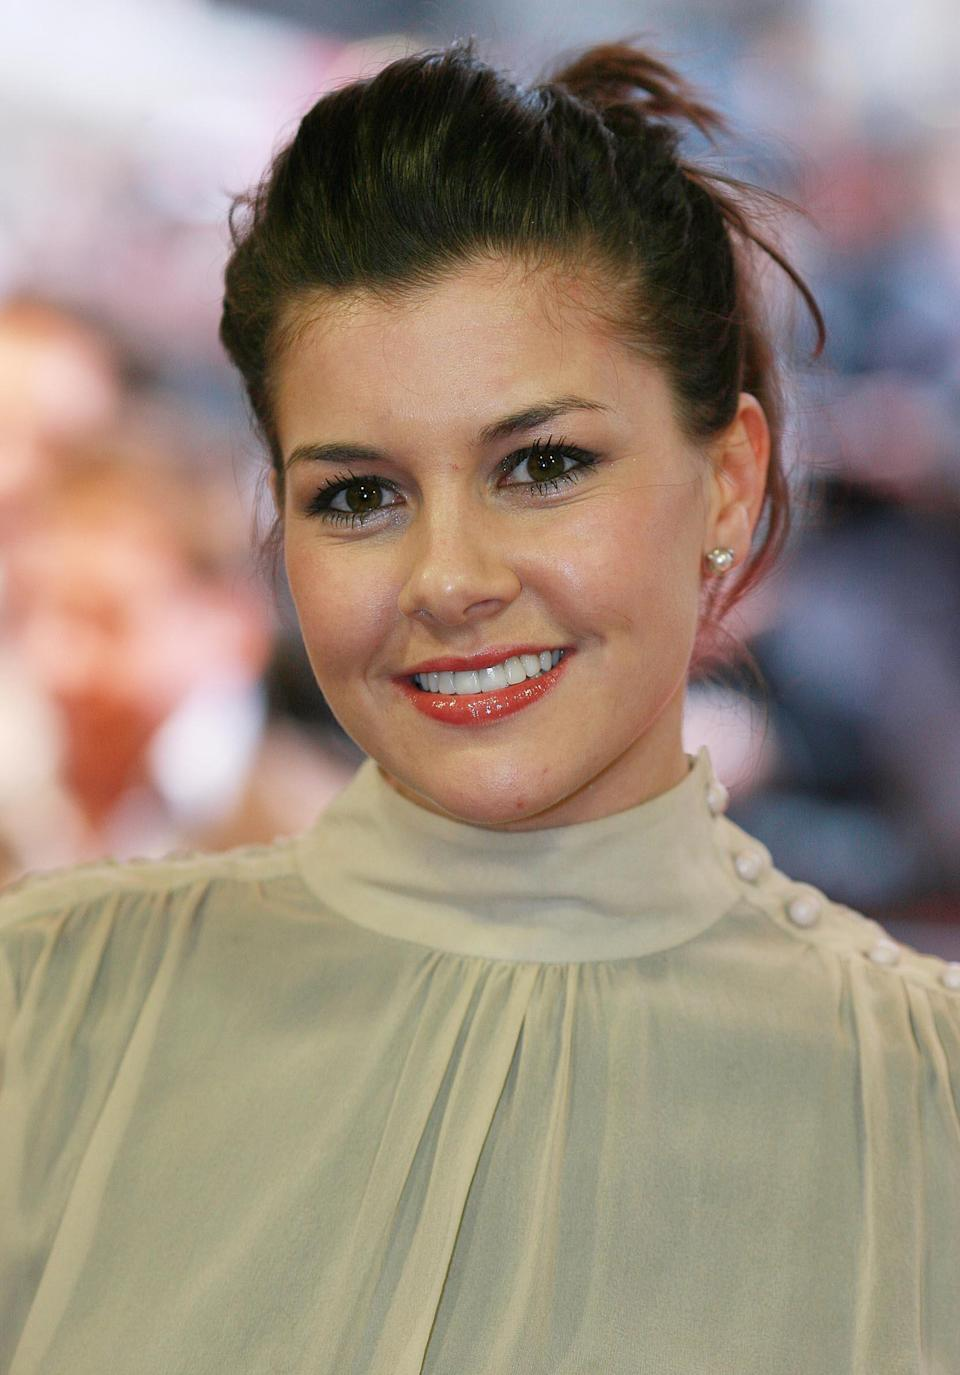 Former Big Brother contestant Imogen Thomas arrives for the UK film premiere of Shooter at the Odeon West End in central London.